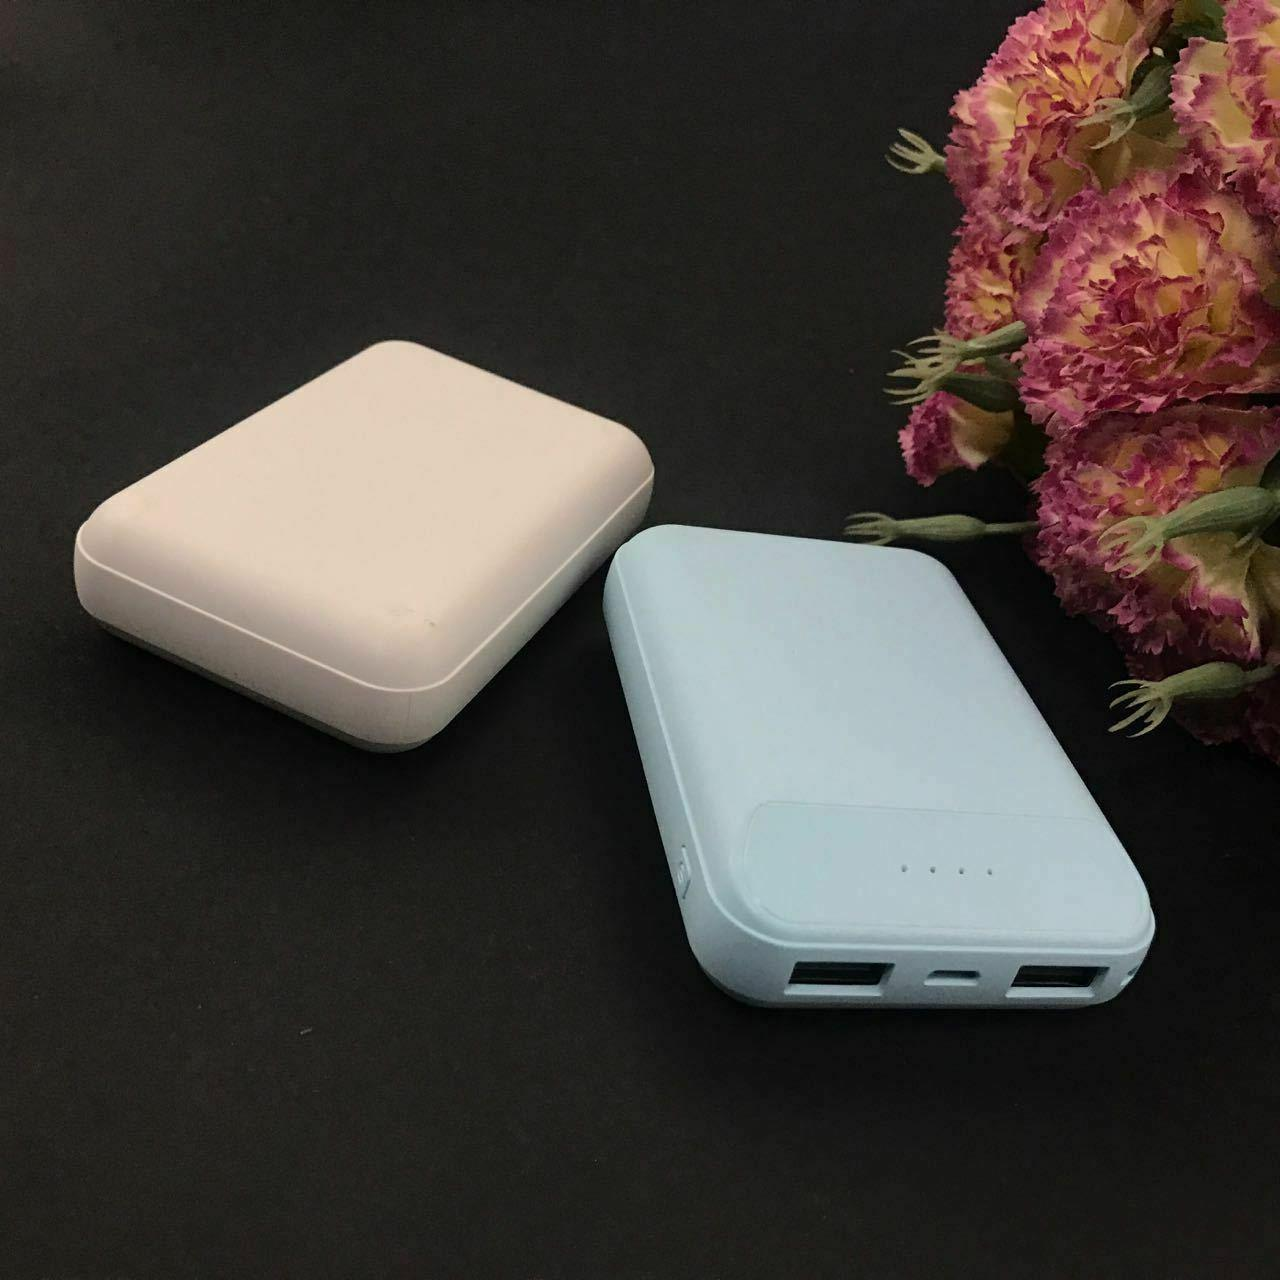 Power Bank Dual USB Mini Battery Charger